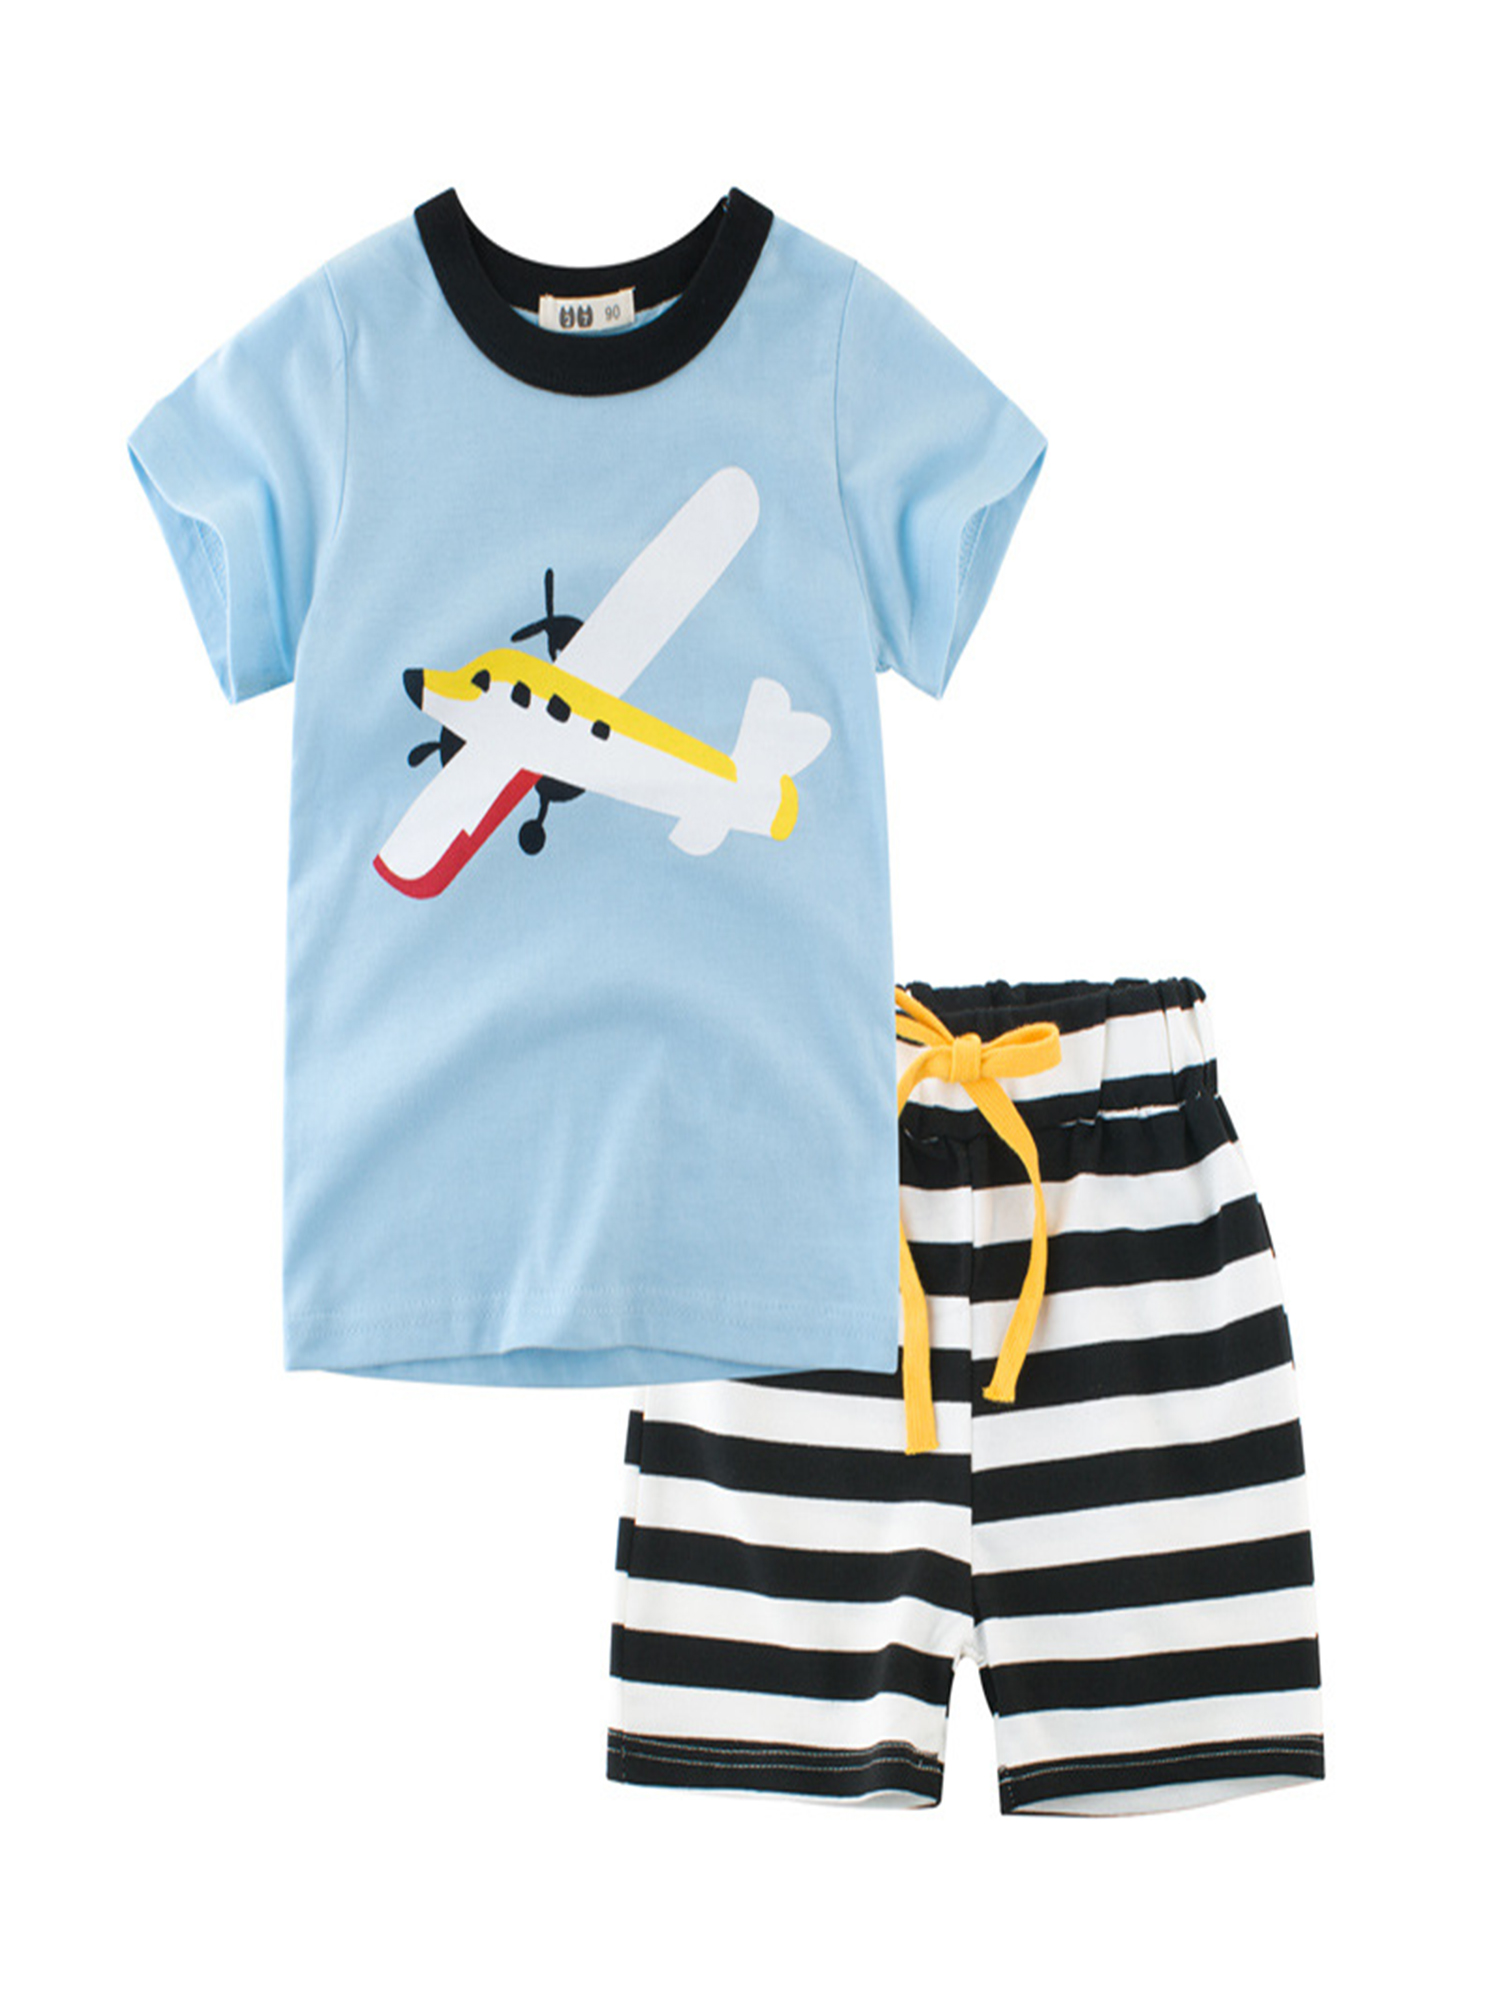 for 0-3 Years Old Baby Boys Outfit,Cute Newborn Baby Boy Cartoon Striped Print T-Shirt Tops and Pocket Pants 2PCS Outfits Summer Tracksuit Clothes